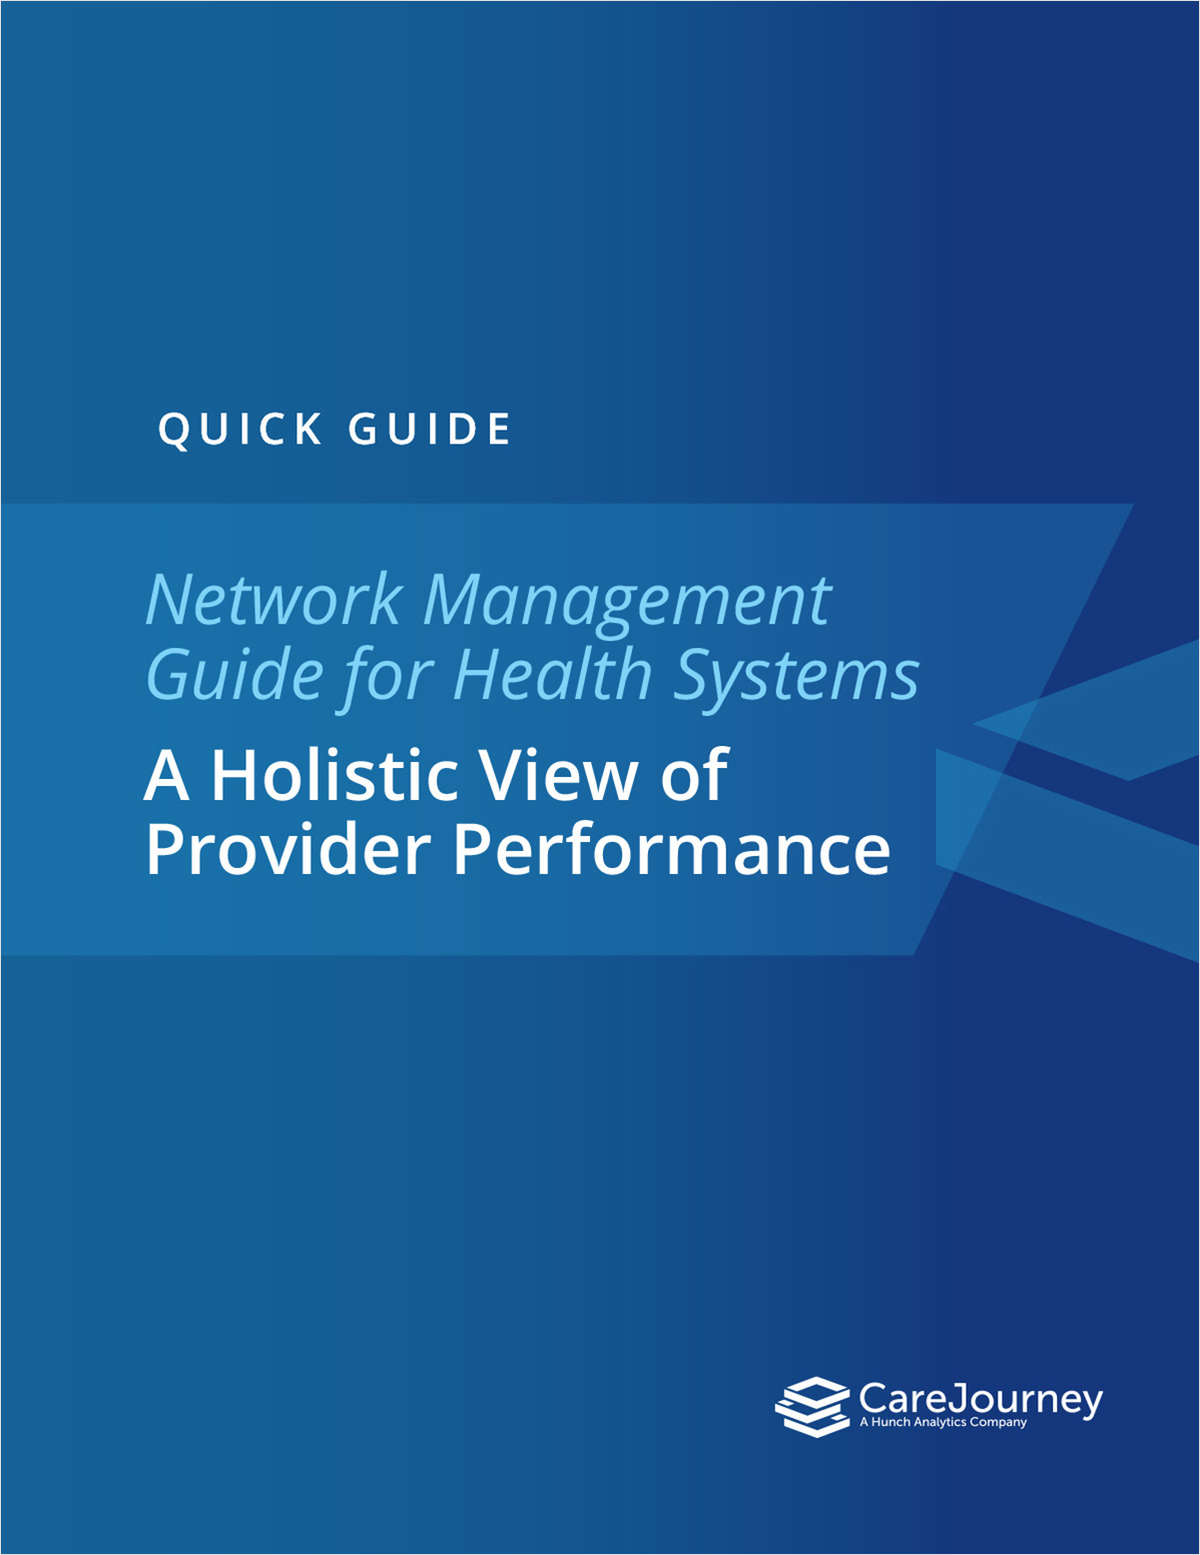 Network Management Guide for Health Systems